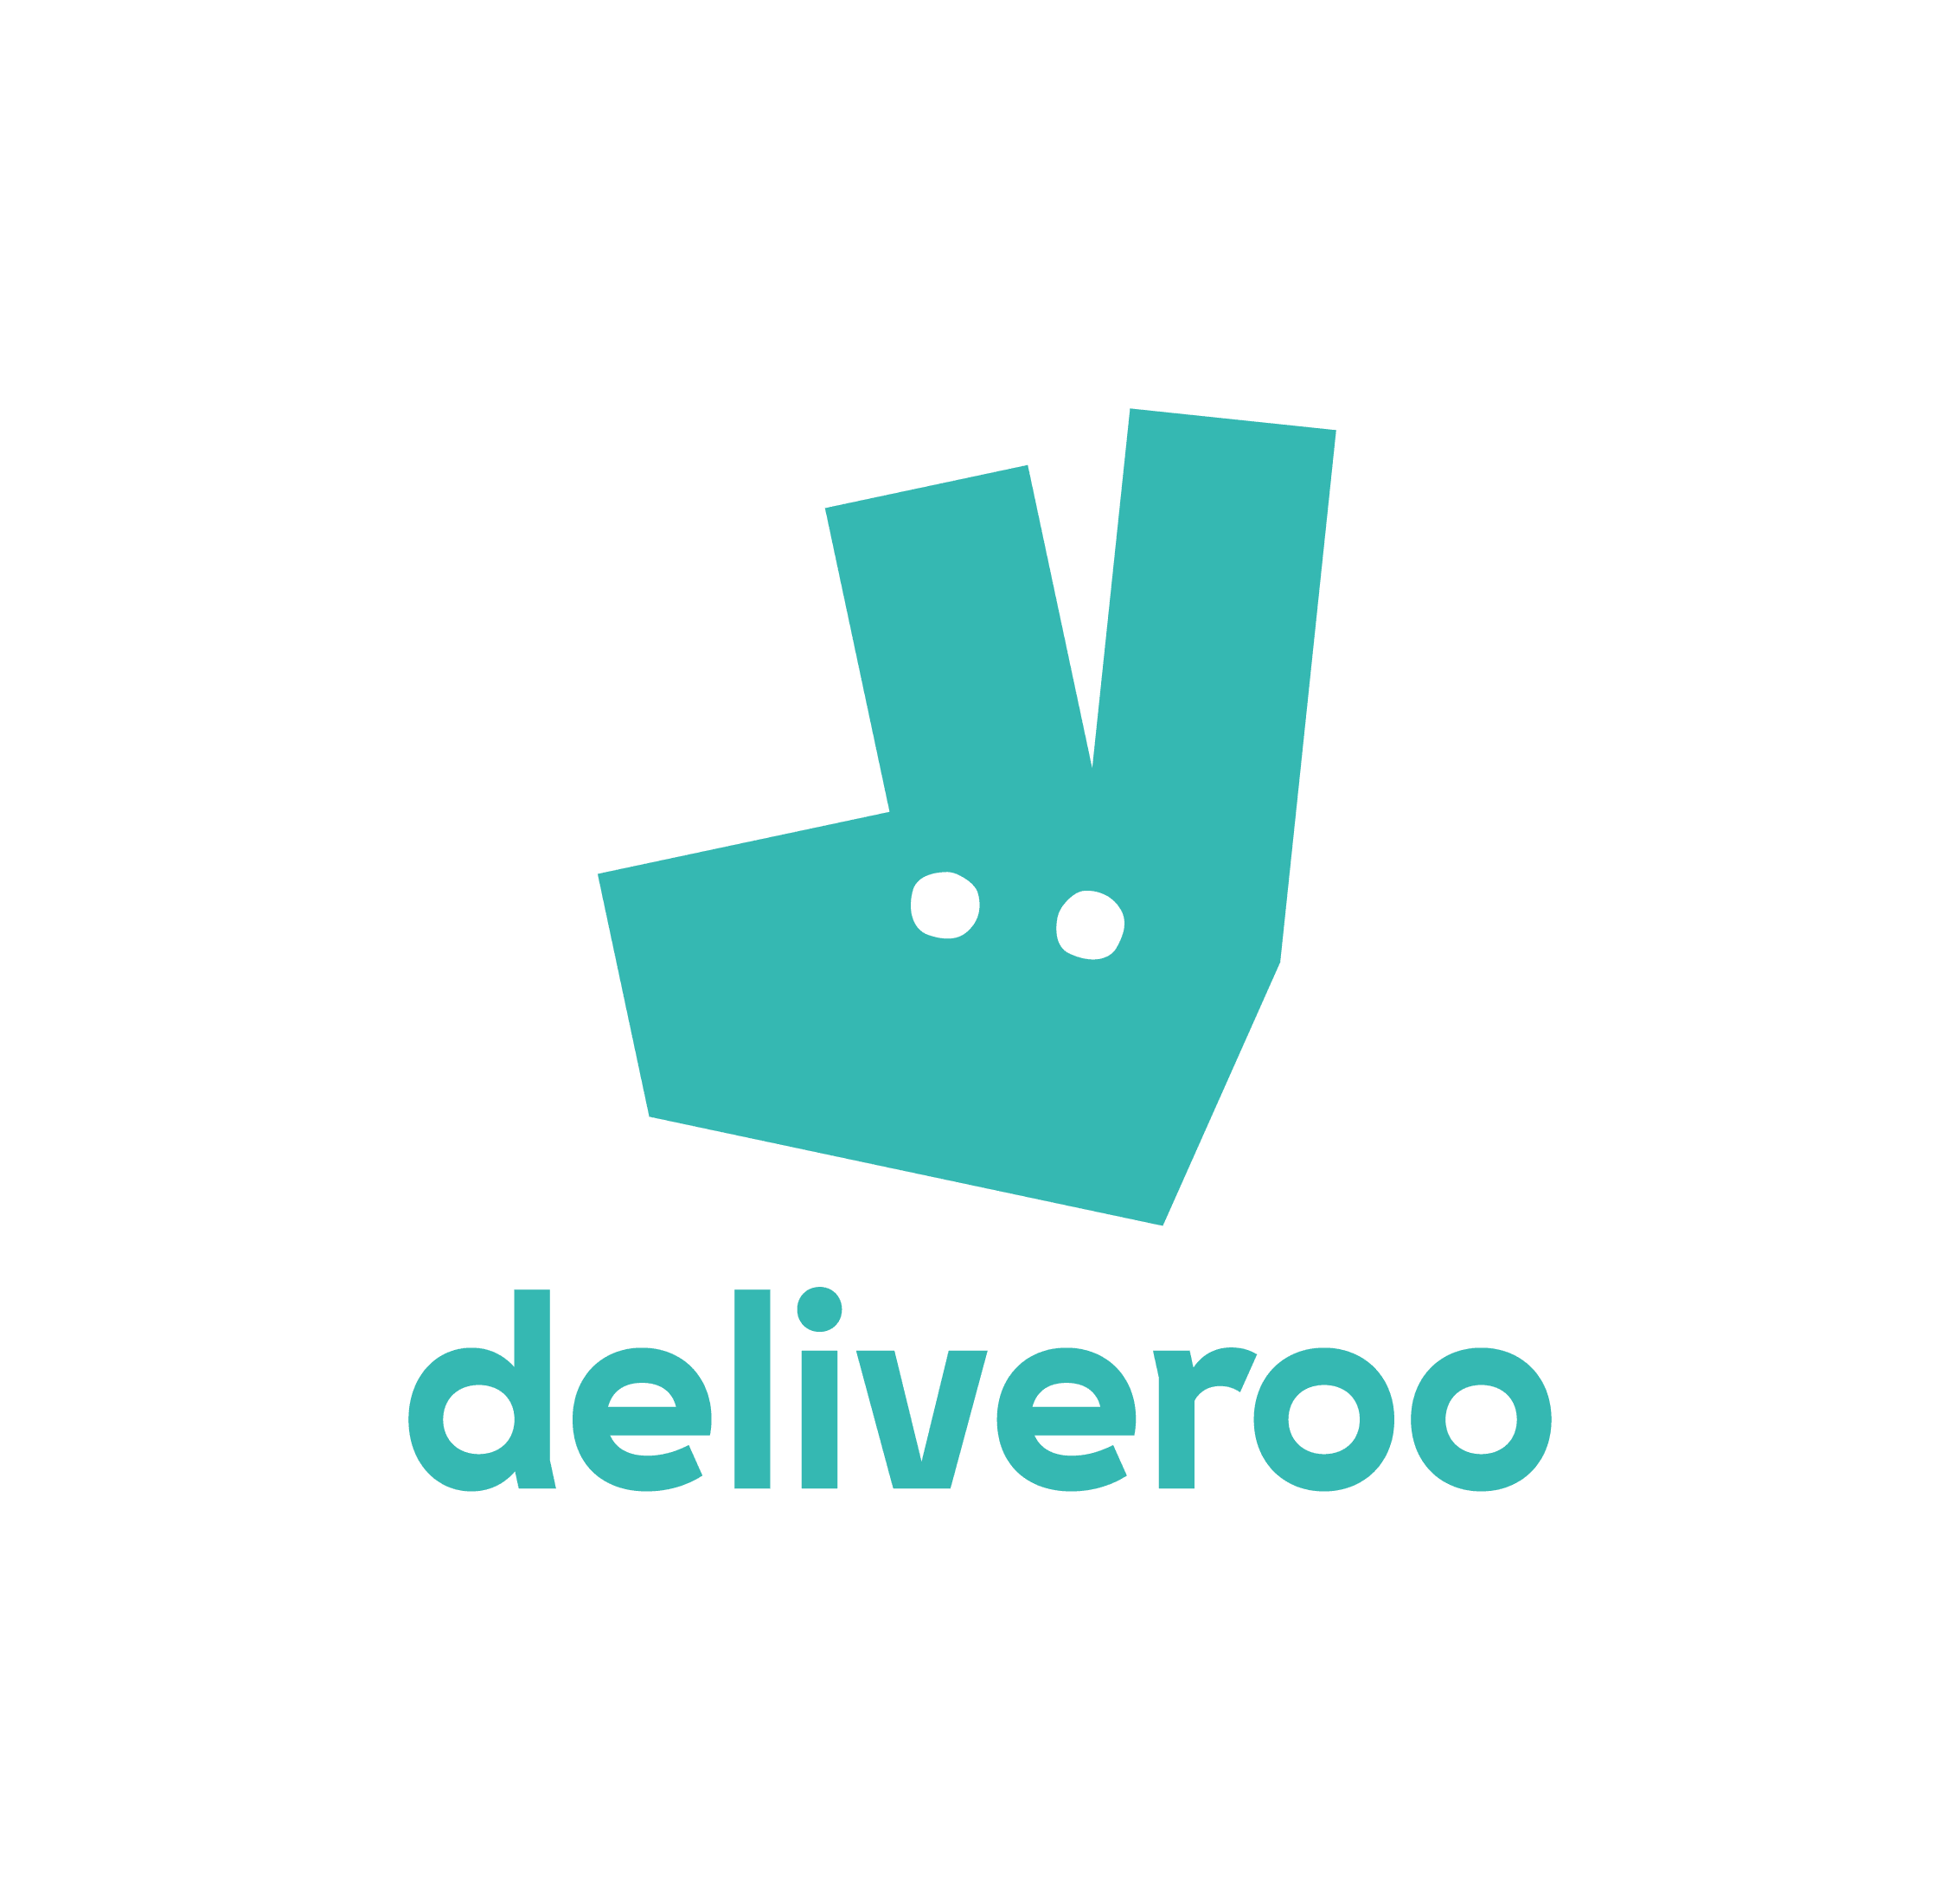 Deliveroo Promo Codes in Singapore September 2020